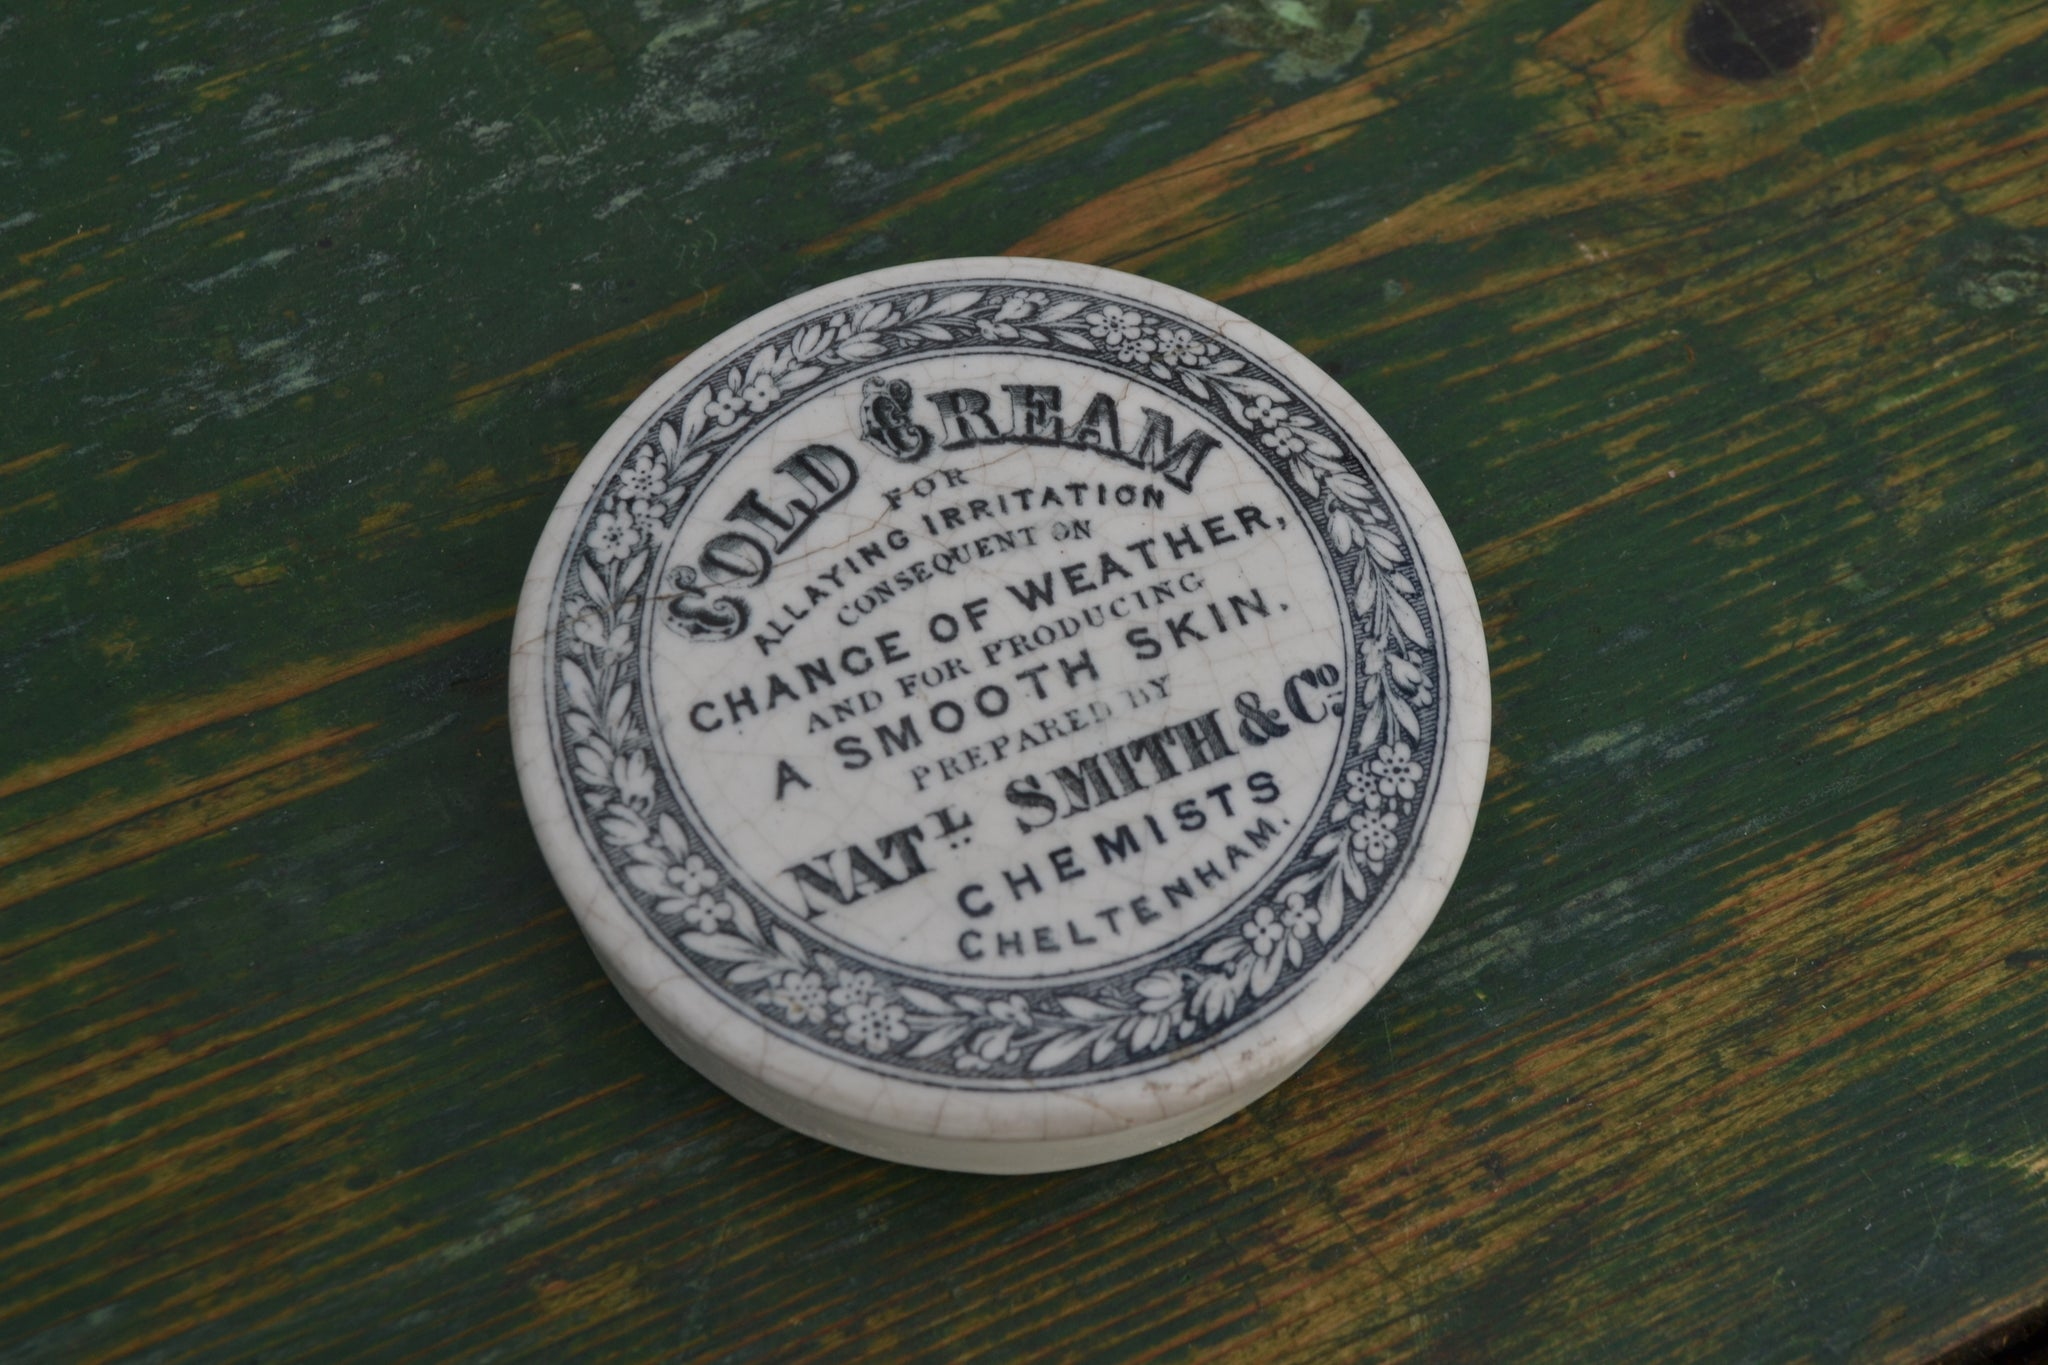 'Change of weather' Cold Cream pot lid - Cheltenham